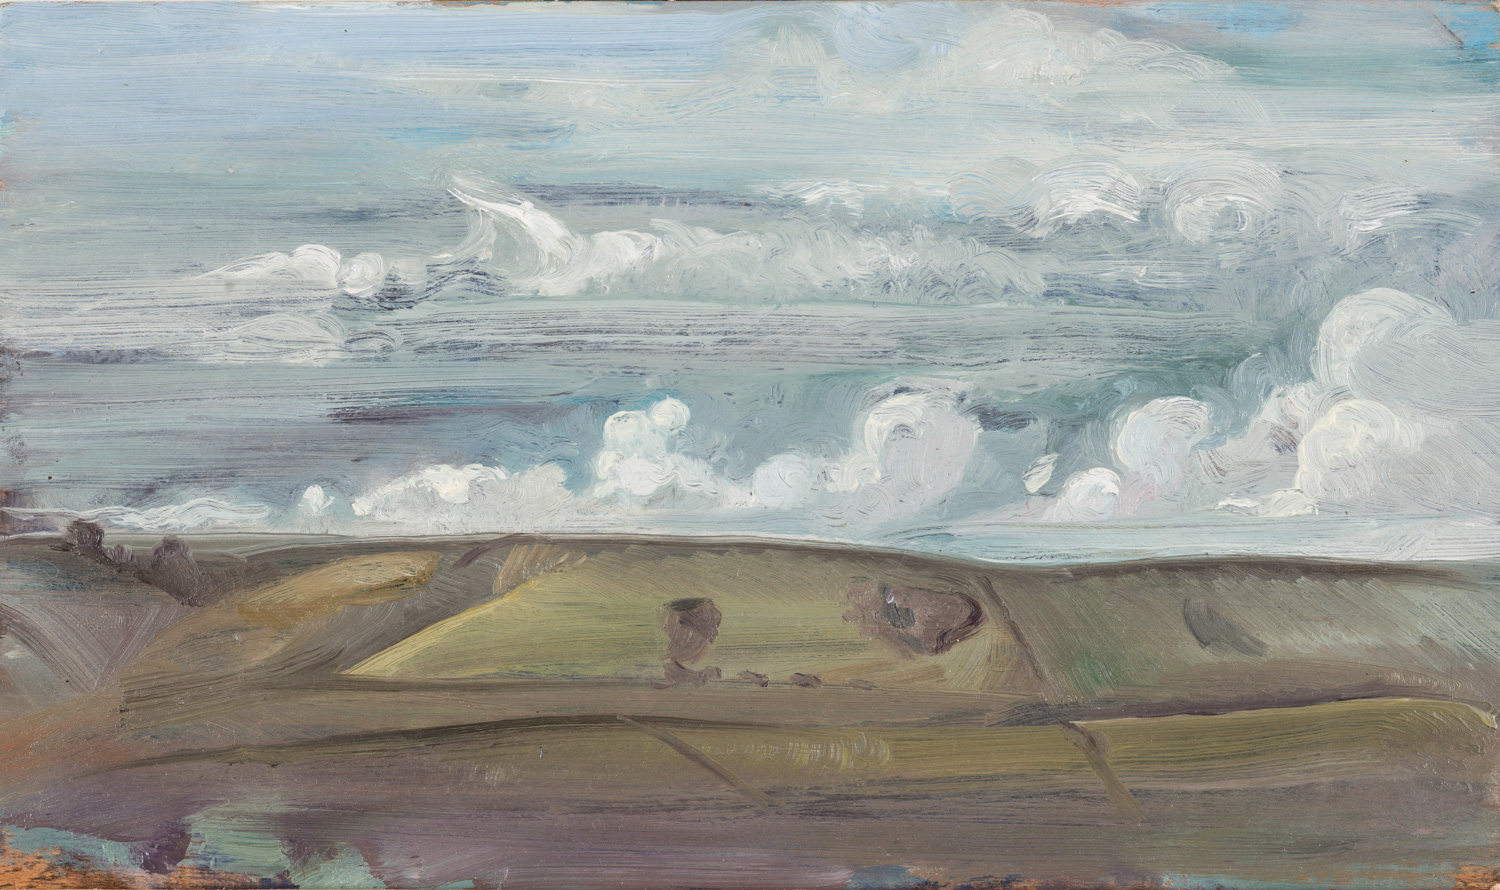 'Winter Sky over Ballard, Isle of Purbeck' 46 x 34 cm oil on gesso panel